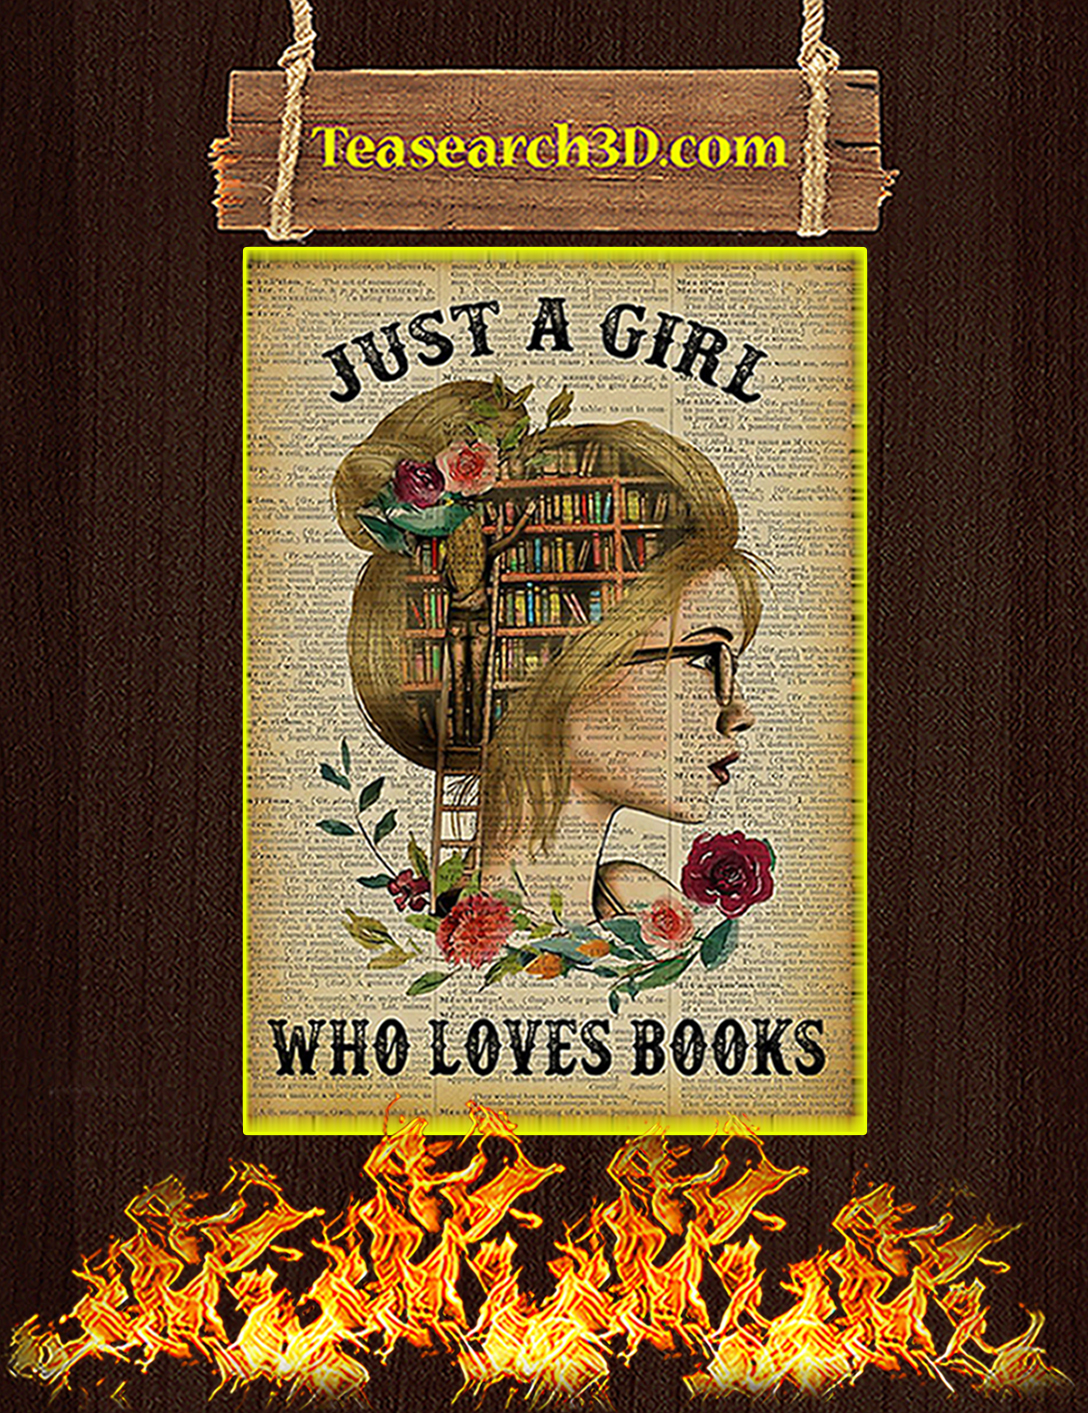 Just a girl who loves books poster A2